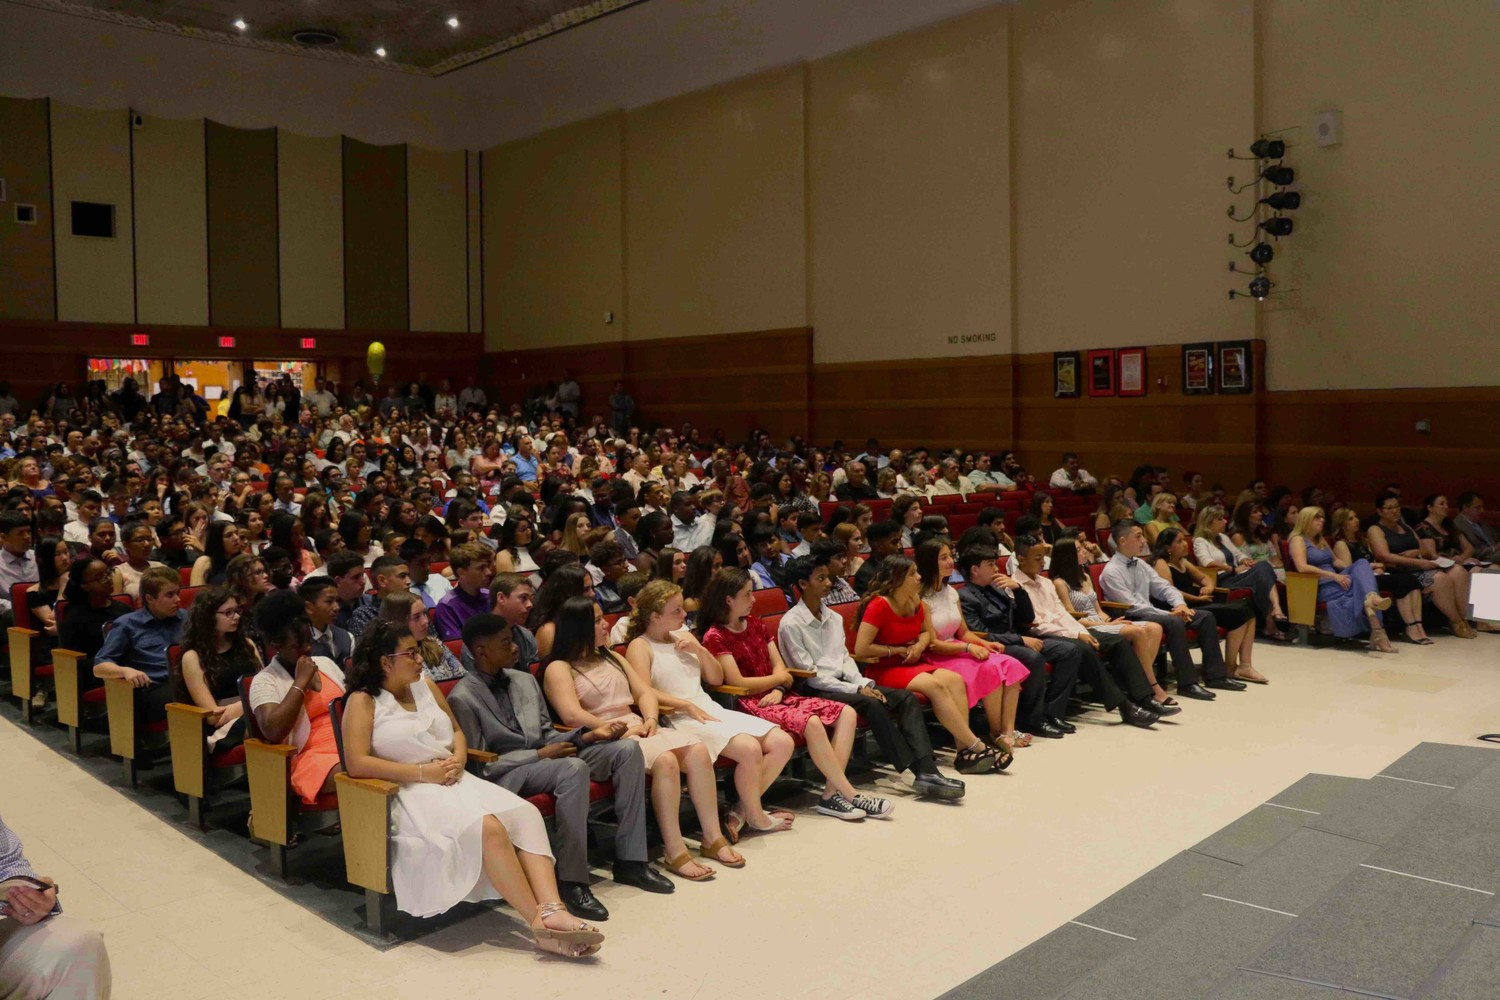 Eighth-grade students from West Hempstead Middle School gathered on the morning of June 22 in the high school's auditorium for a moving up ceremony.